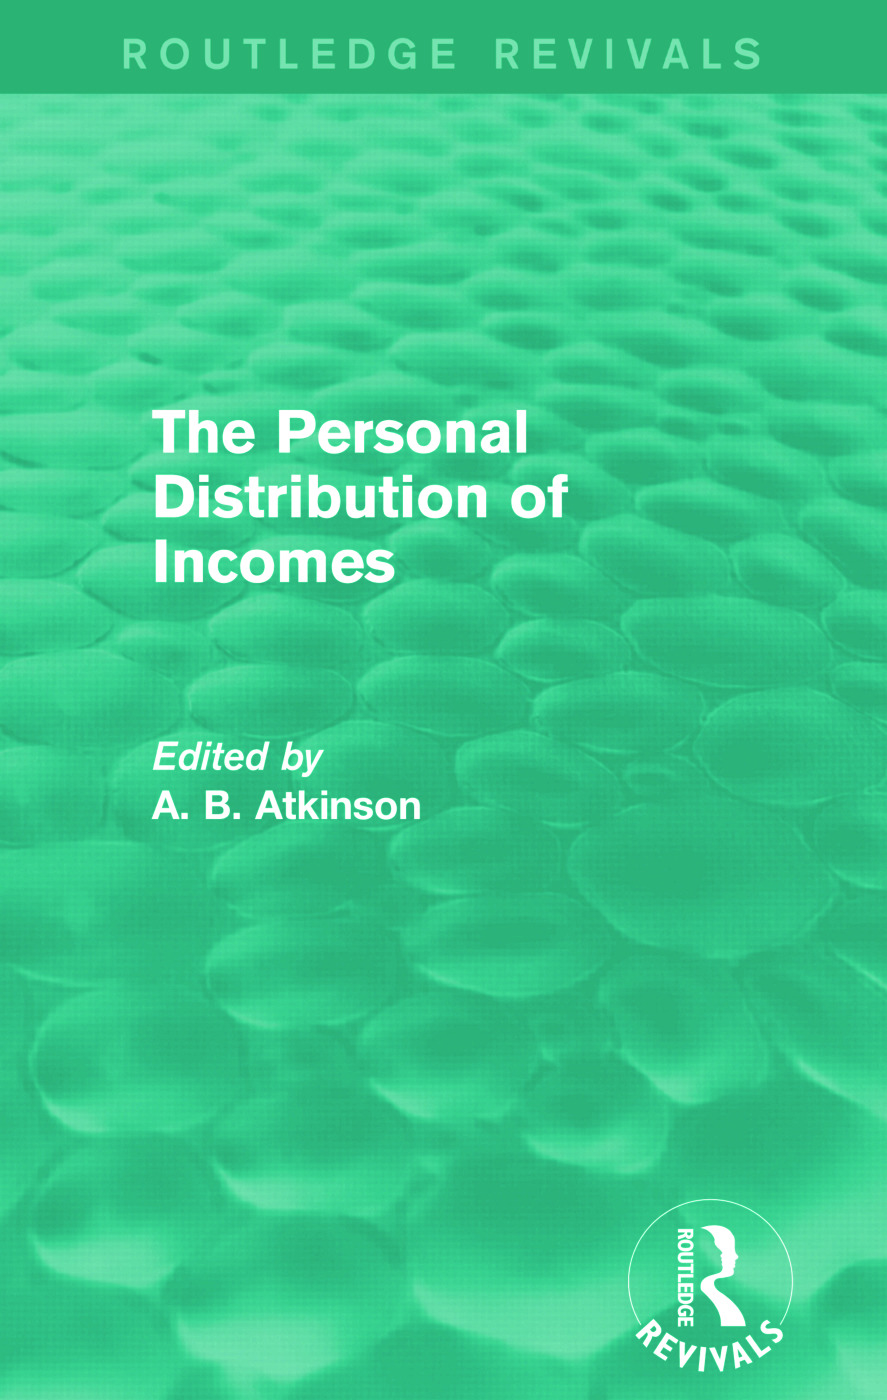 The Personal Distribution of Incomes (Routledge Revivals) book cover